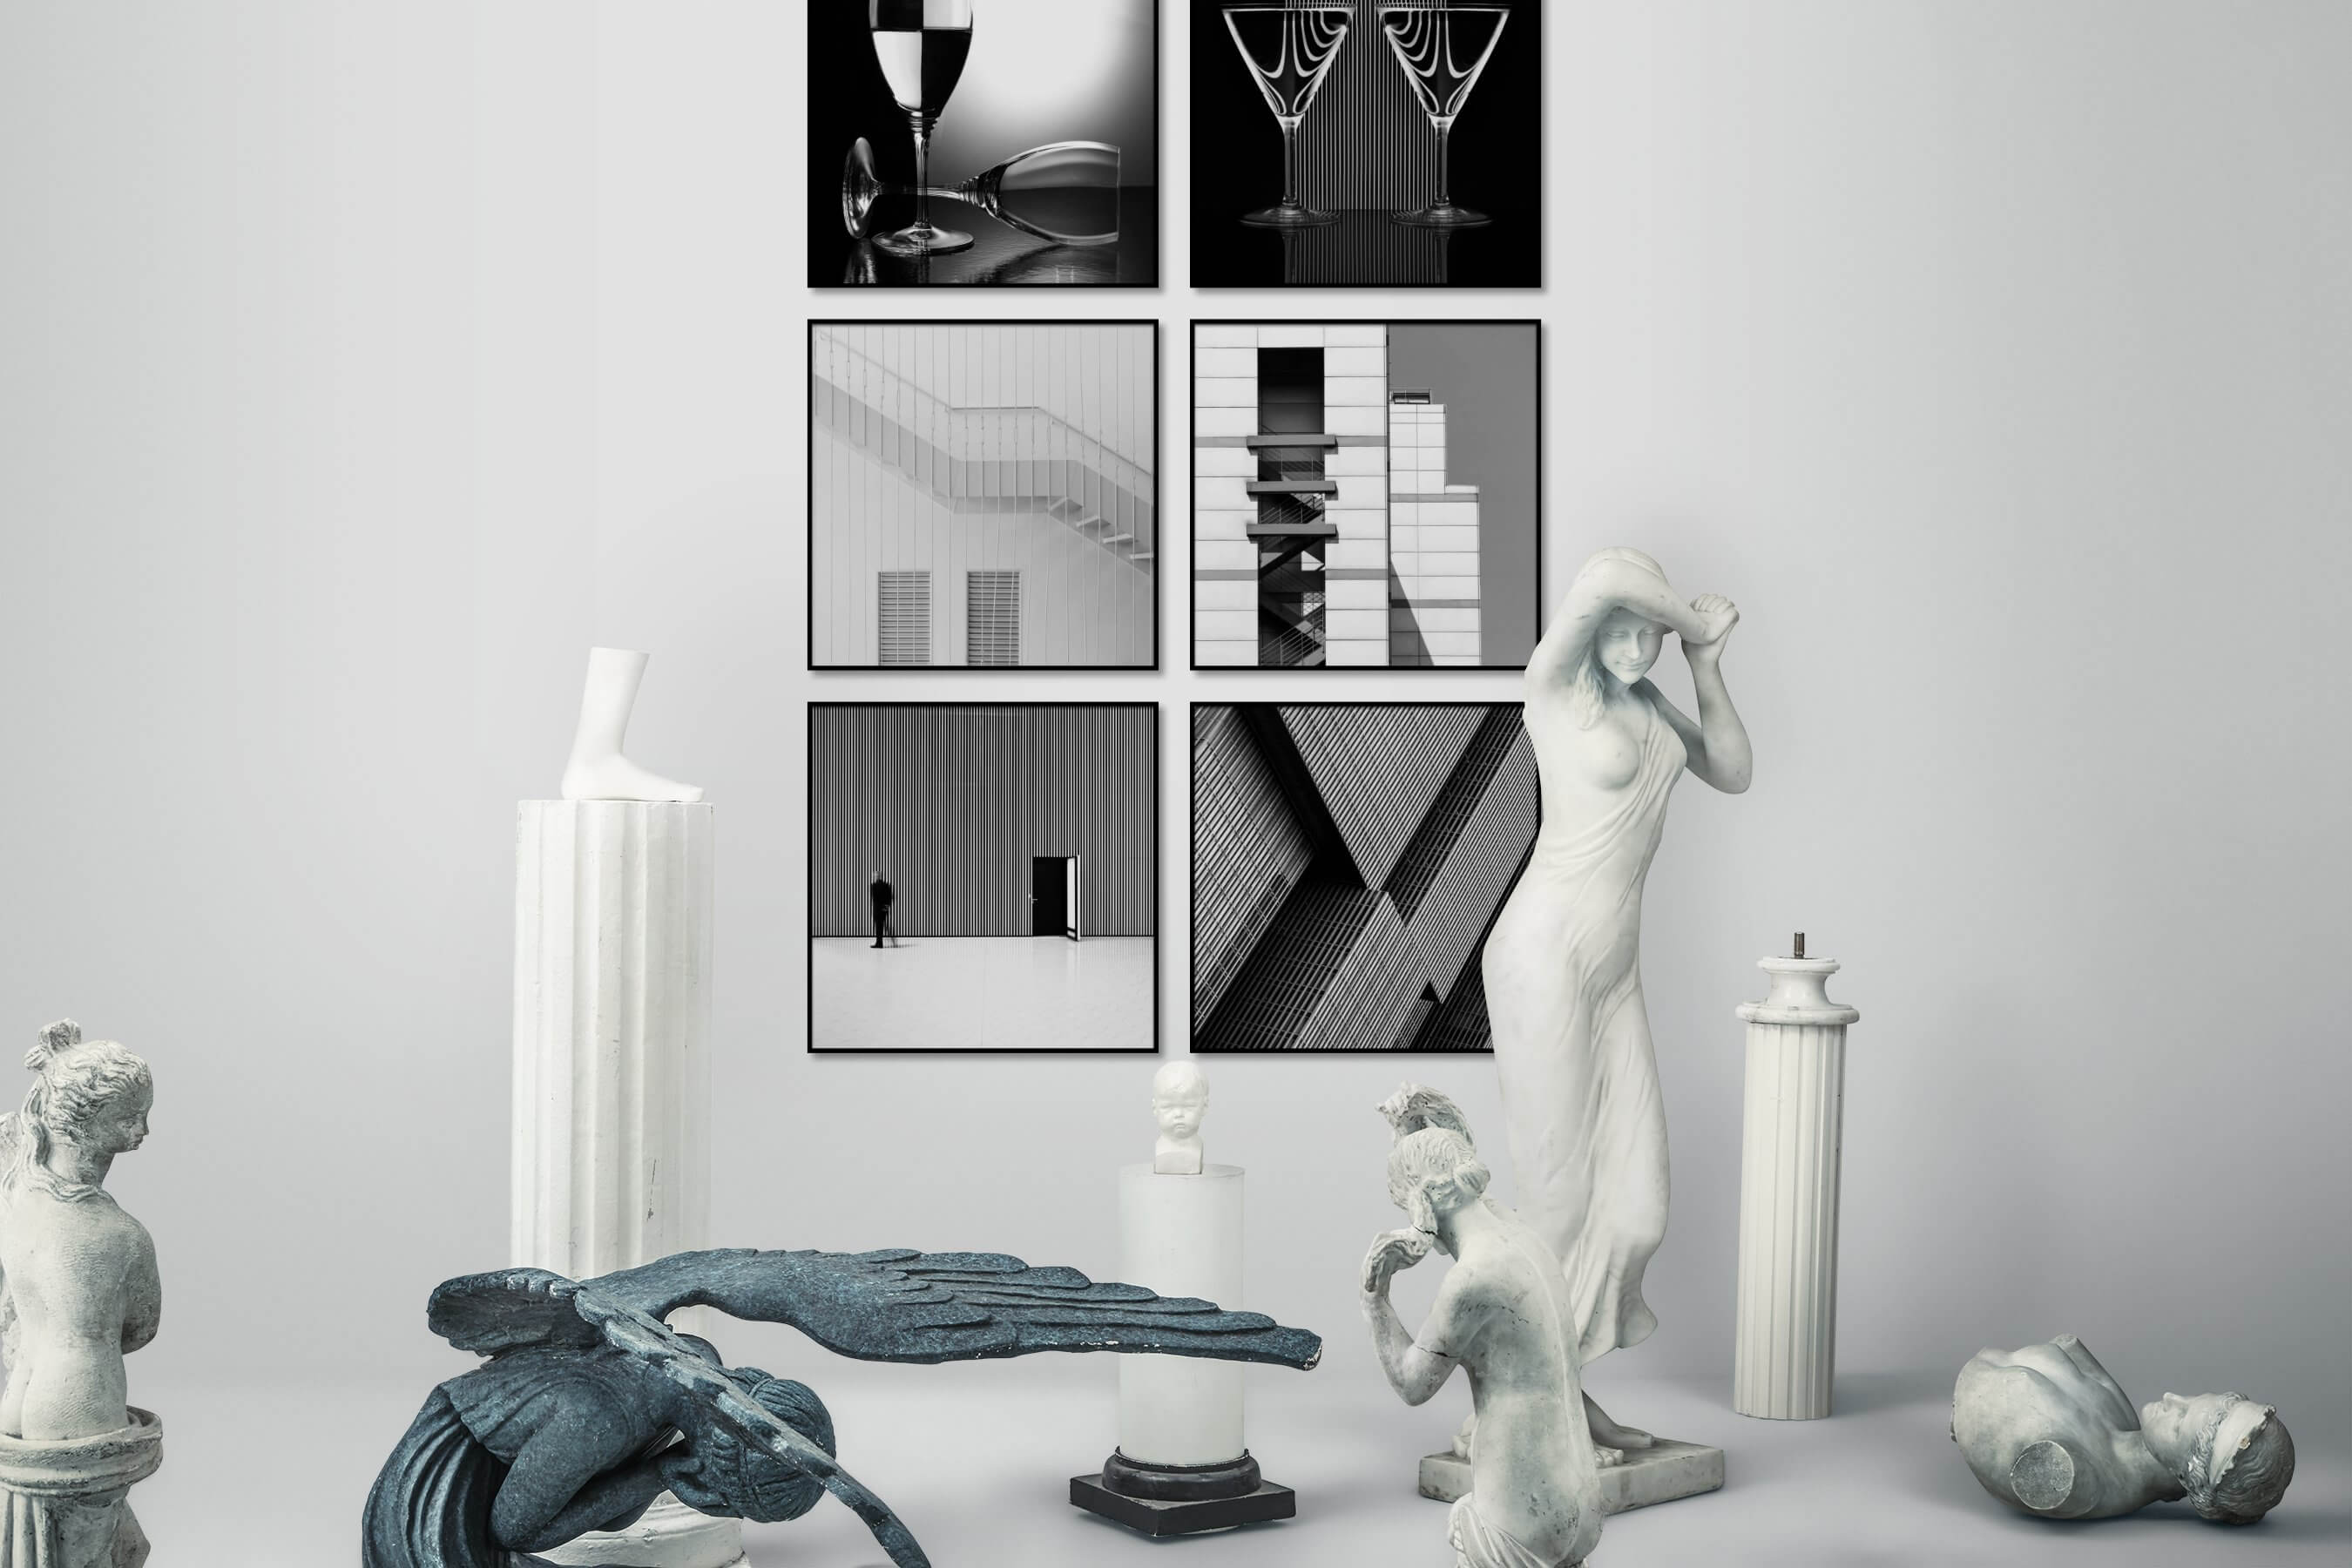 Gallery wall idea with six framed pictures arranged on a wall depicting Black & White, For the Moderate, City Life, Artsy, For the Minimalist, and For the Maximalist